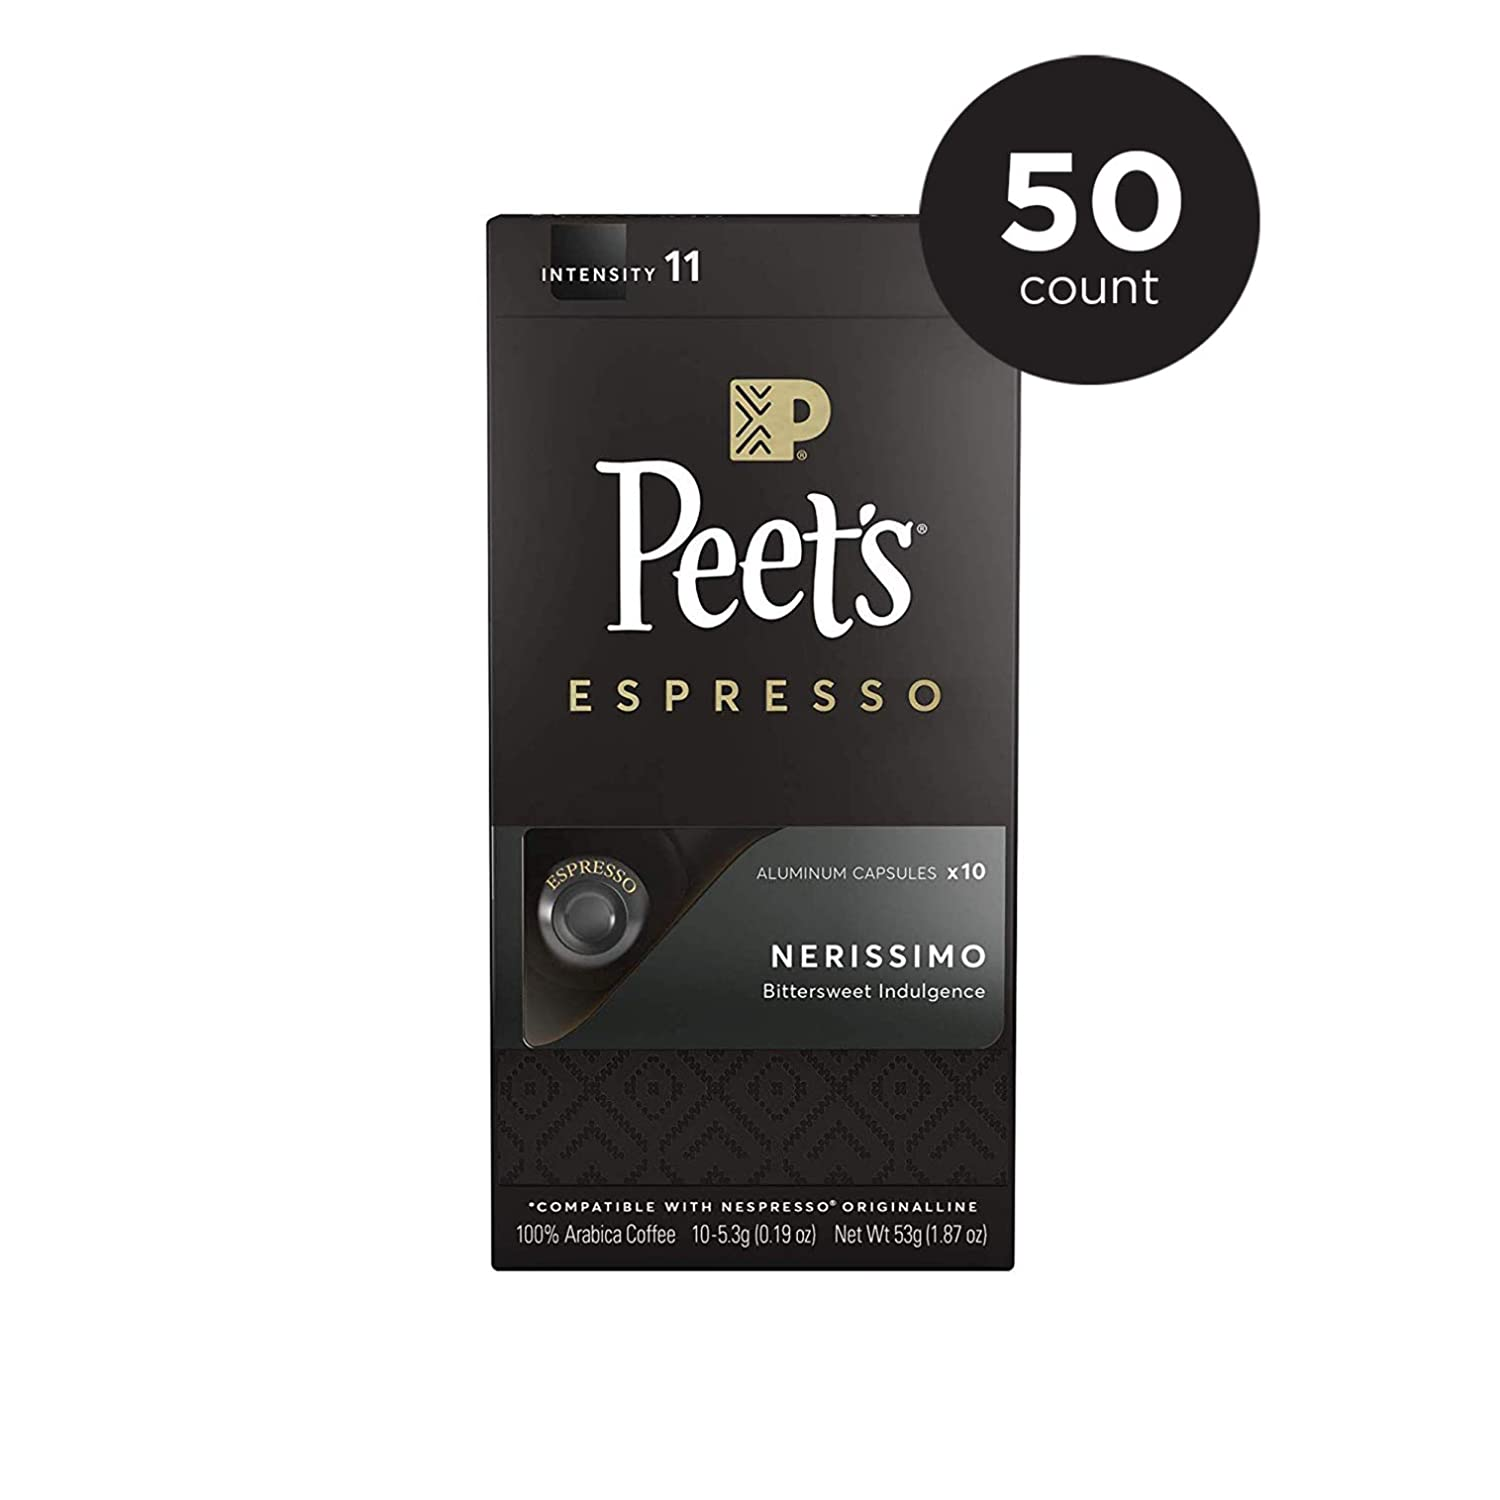 Peet's Coffee Espresso Capsules Nerissimo Intensity 11 (50 Count) Compatible with Nespresso Original Brewers Single Cup Coffee Pods